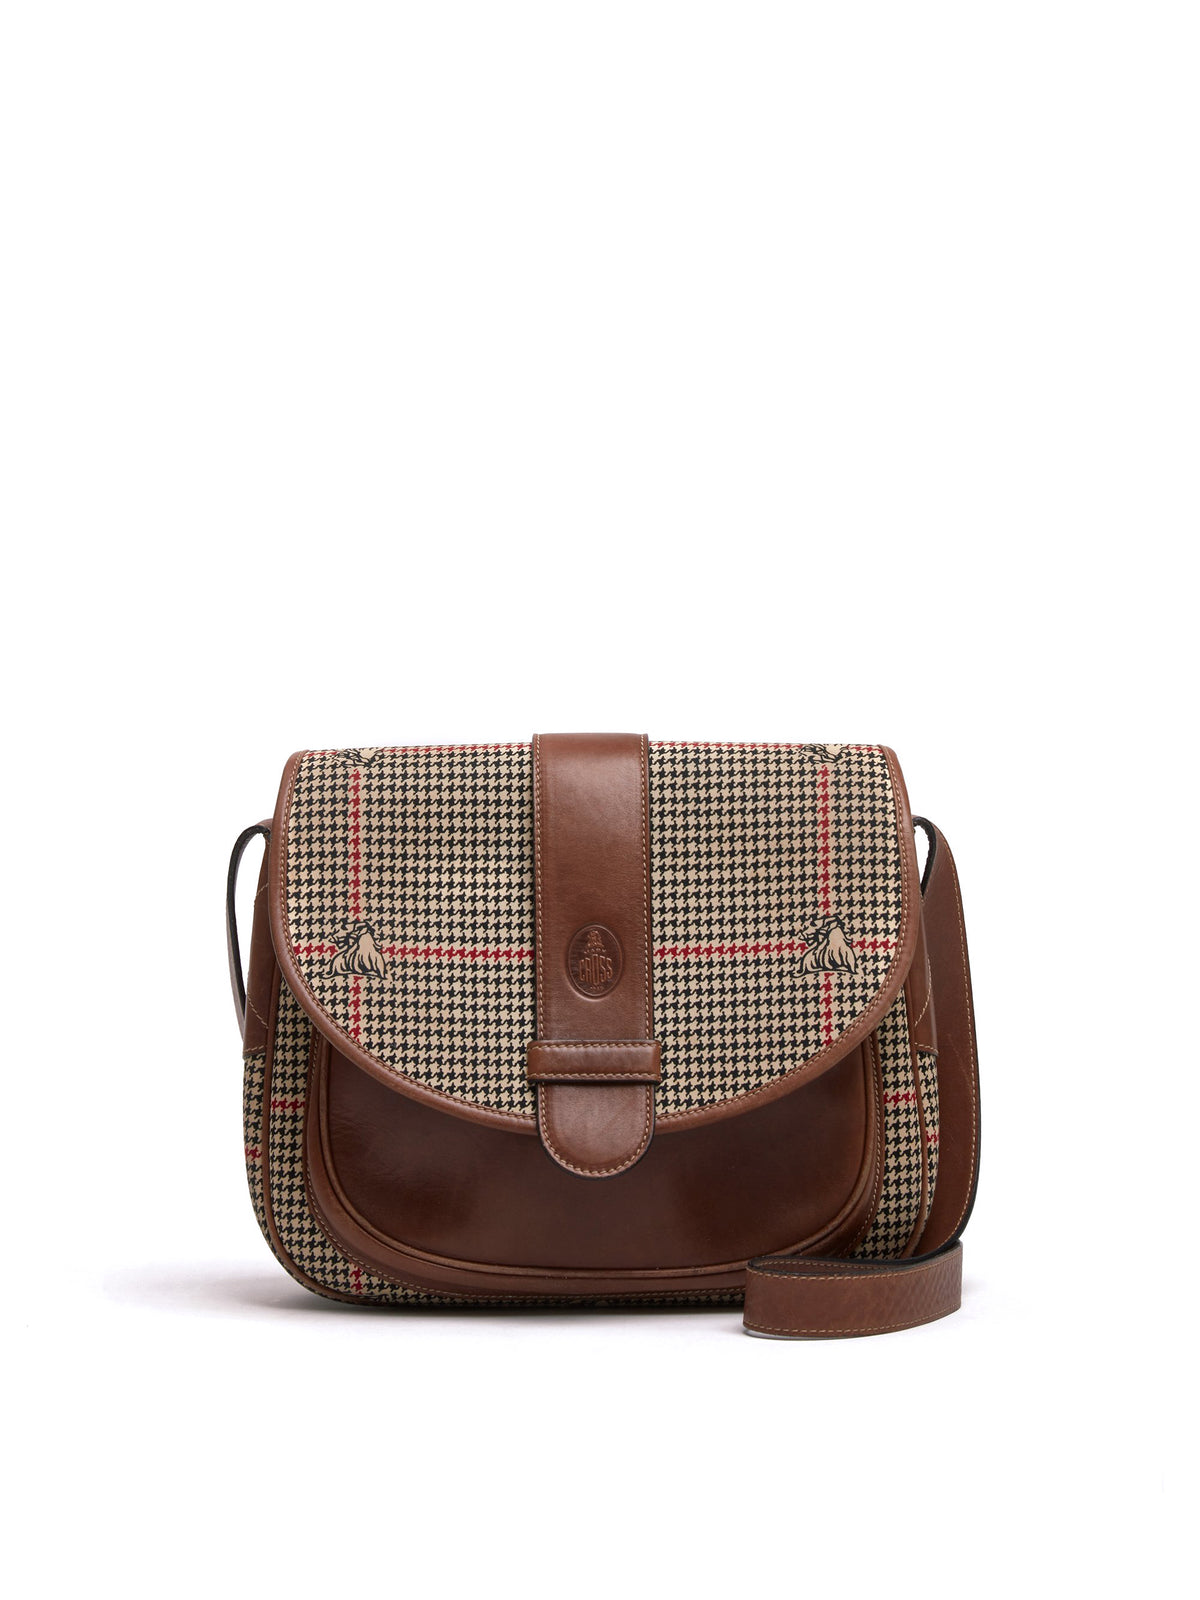 Mark Cross Vintage Houndstooth Leather Crossbody Bag Cognac Front